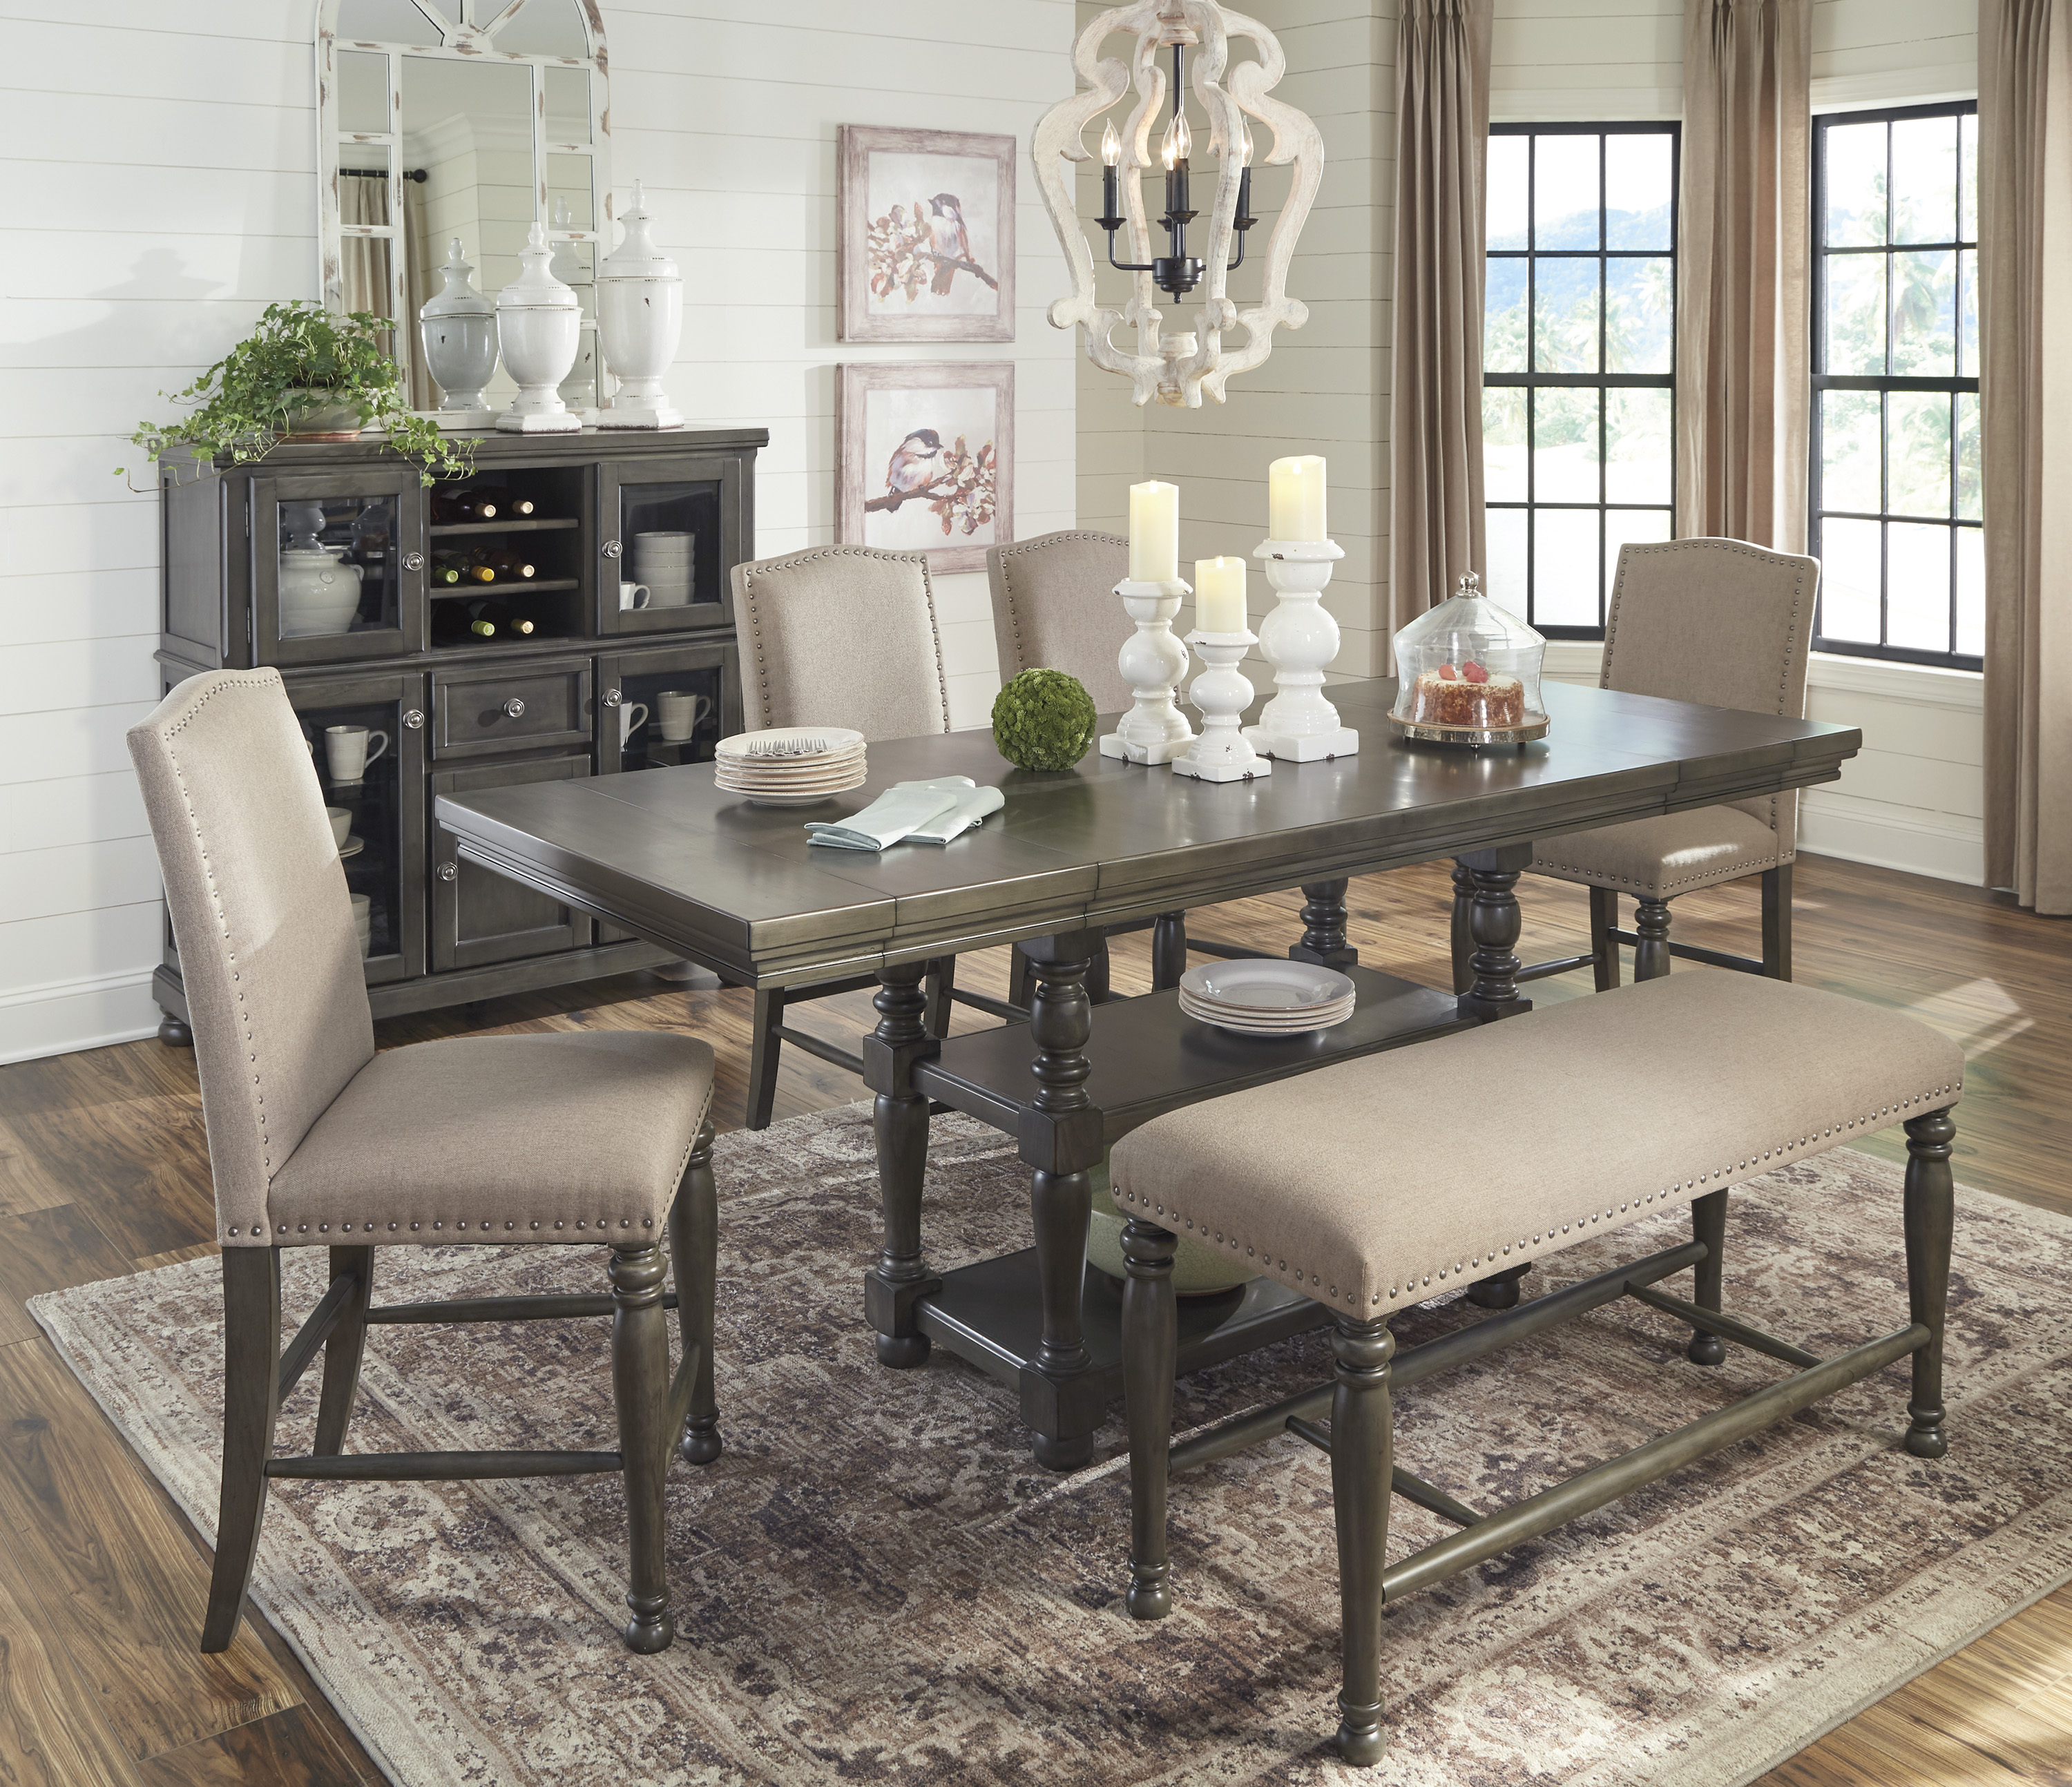 Find Great Deals On Ashley Dining Room Furniture In Philadelphia, Pa With Regard To Most Up To Date West Hill Family Table 3 Piece Dining Sets (View 13 of 20)